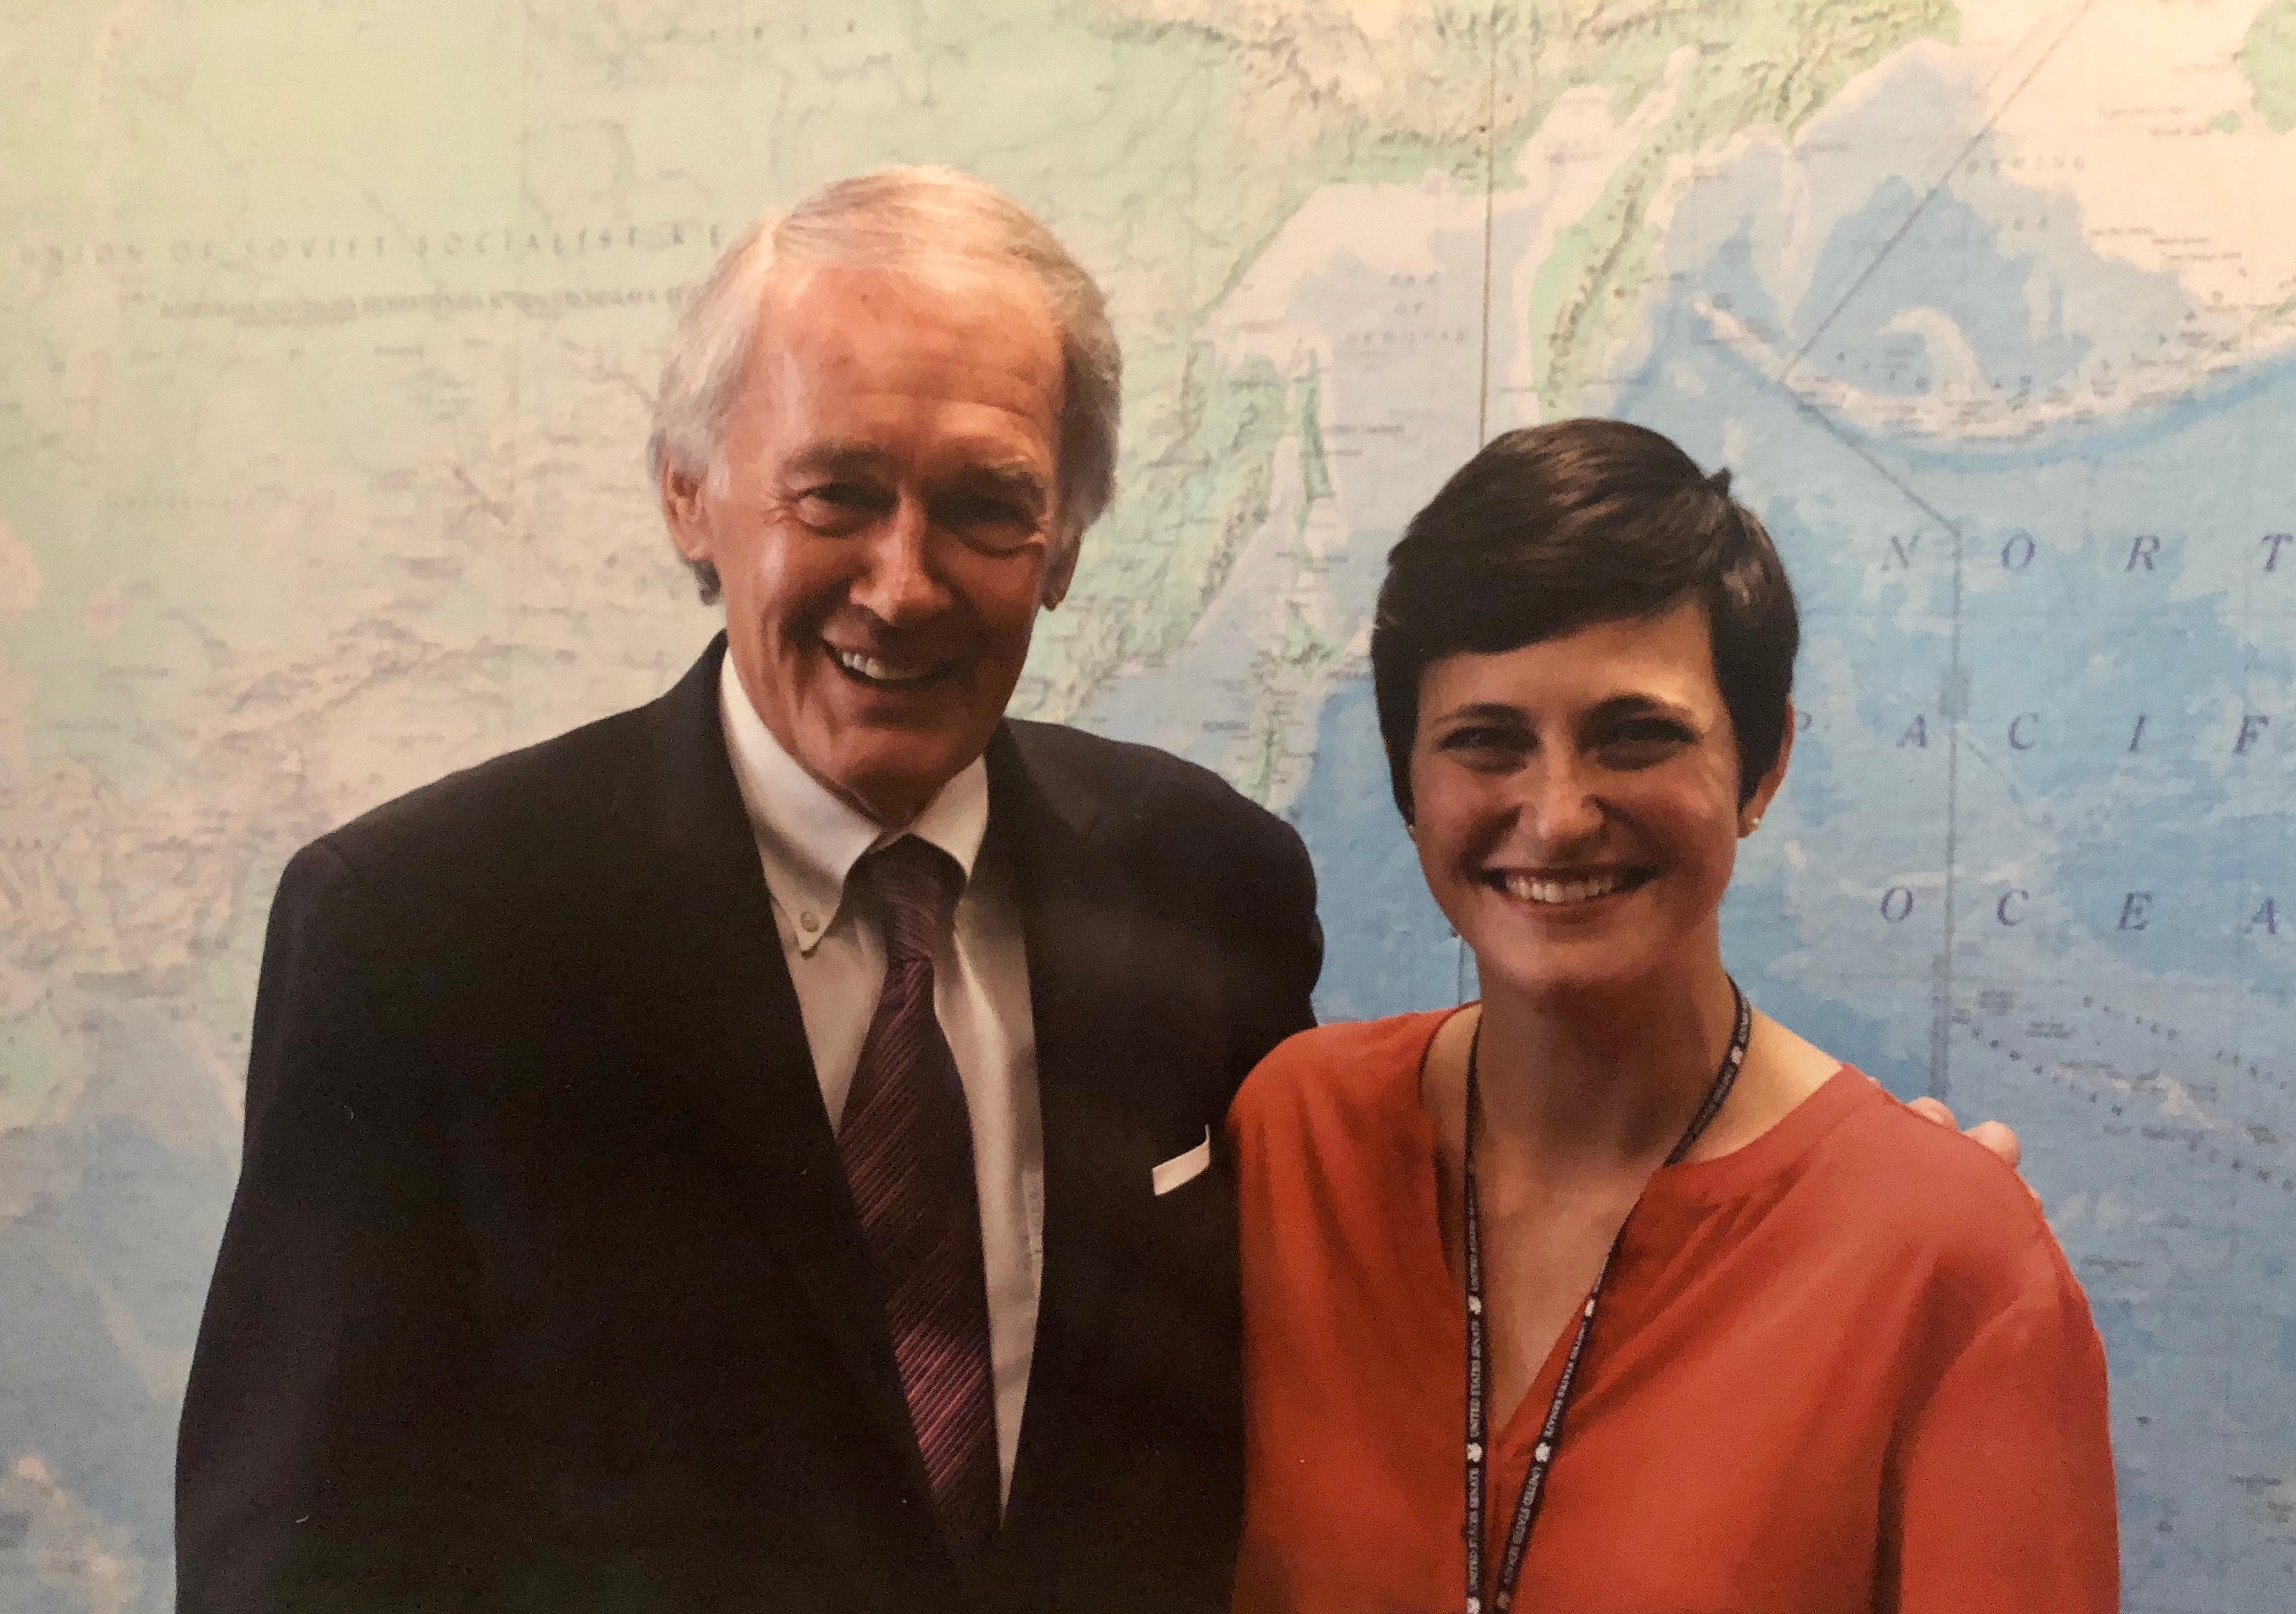 Mary Hannah Schultz and Senator Edward Markey